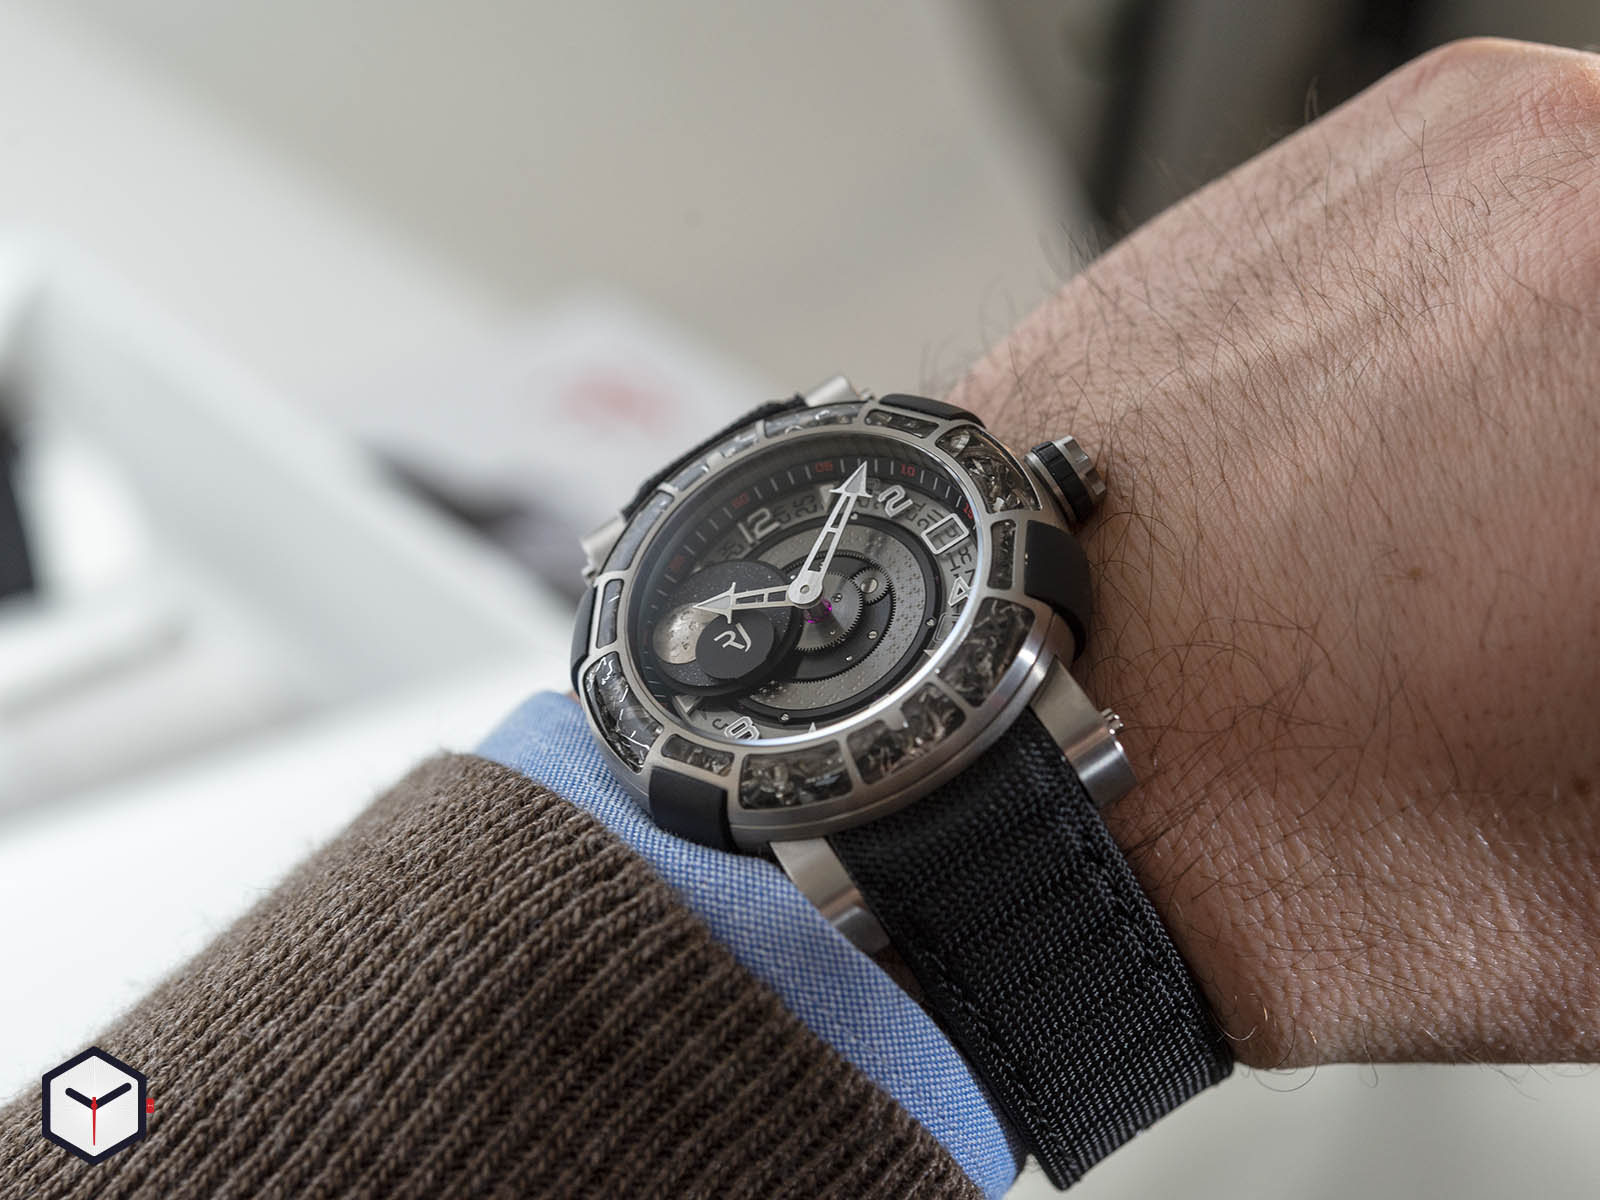 1s45l-tztr-8023-pr-asn19-romain-jerome-arraw-6919-space-titanium-sihh-2019-9.jpg